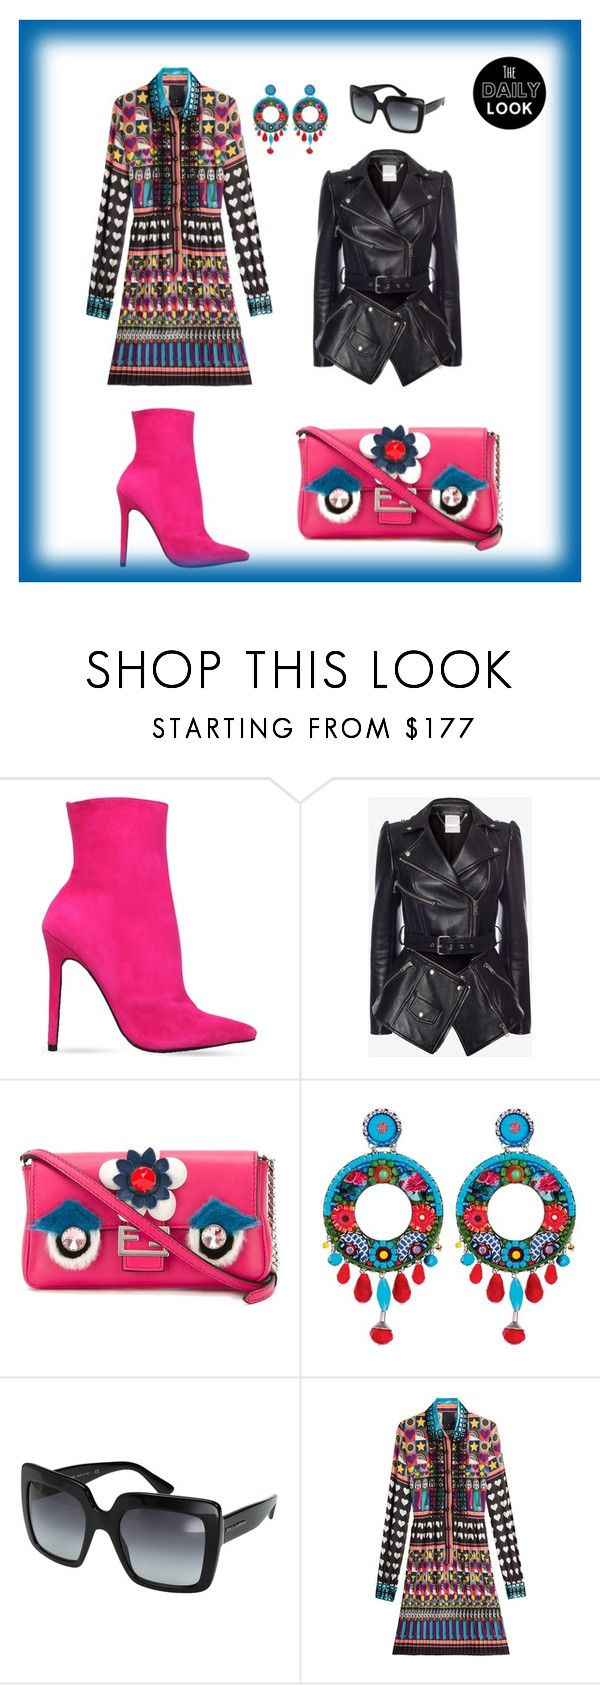 """The Daily Look"" by giagiagia ❤ liked on Polyvore featuring Carvela, Alexander McQueen, Fendi, Ayala Bar, Dolce&Gabbana and Anna Sui"